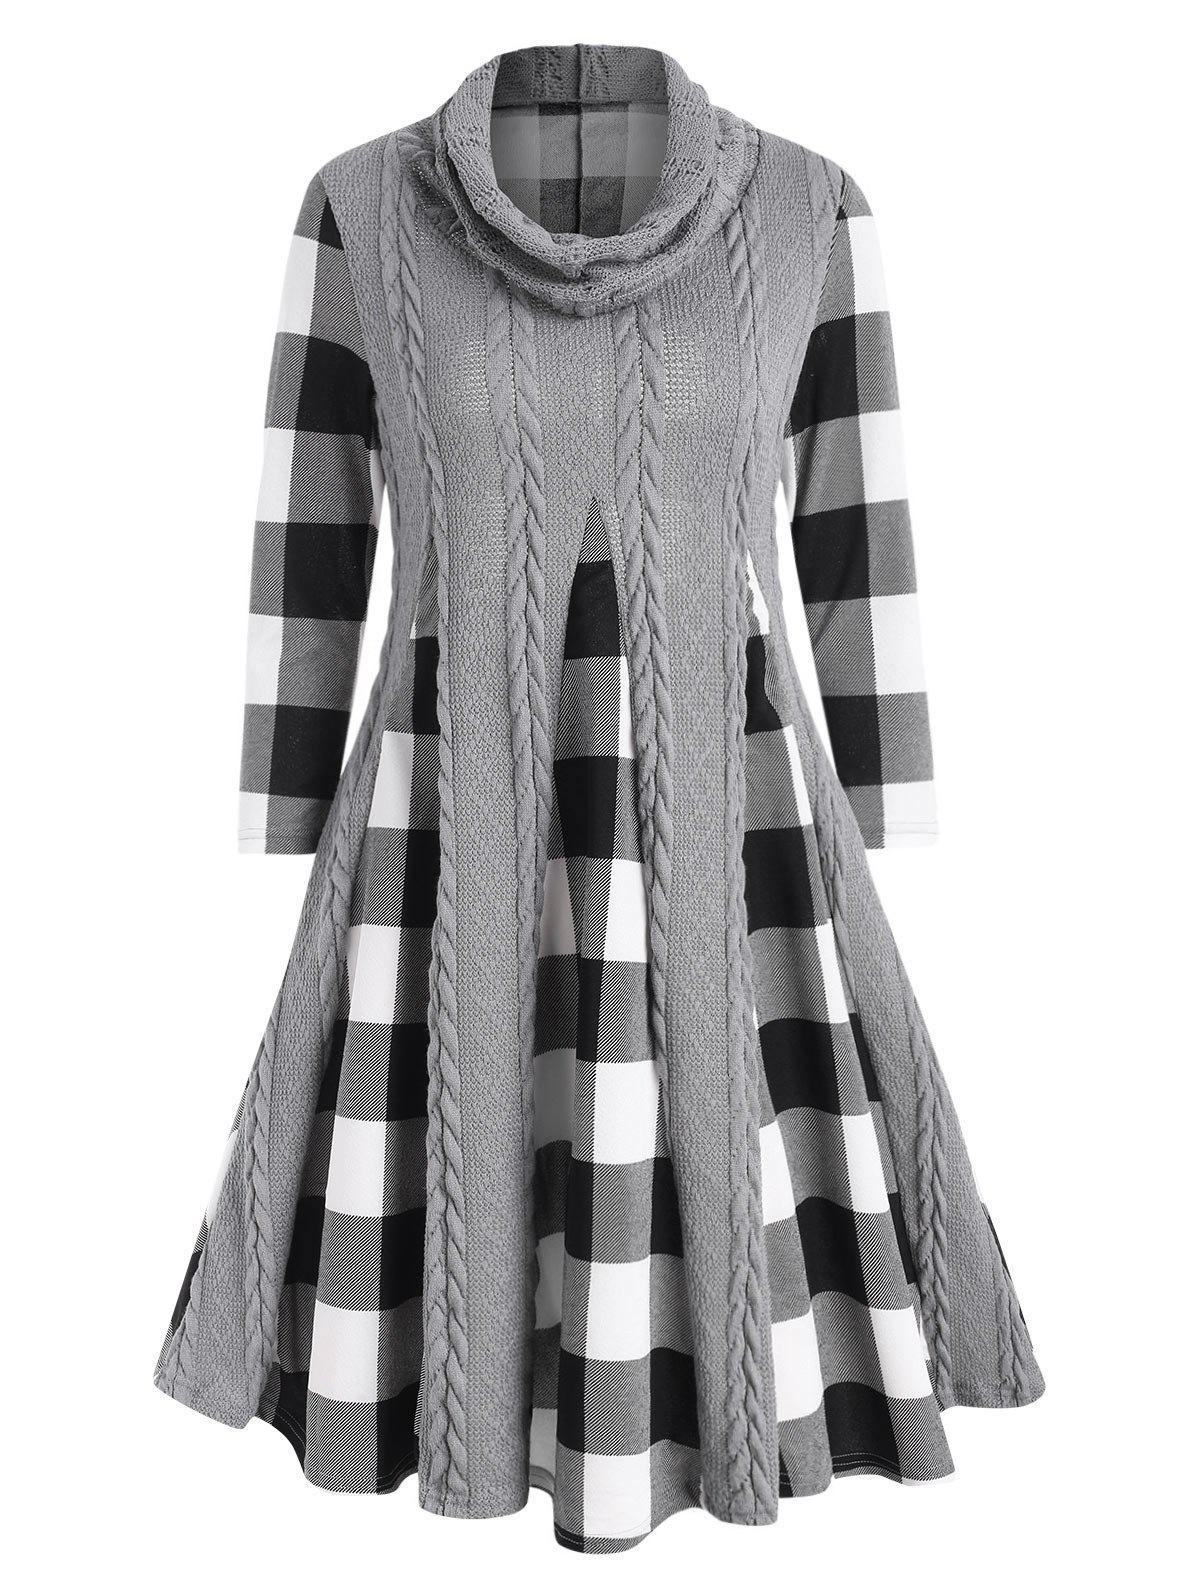 Cowl Neck Cable Knit Panel Plaid Dress - GRAY 3XL